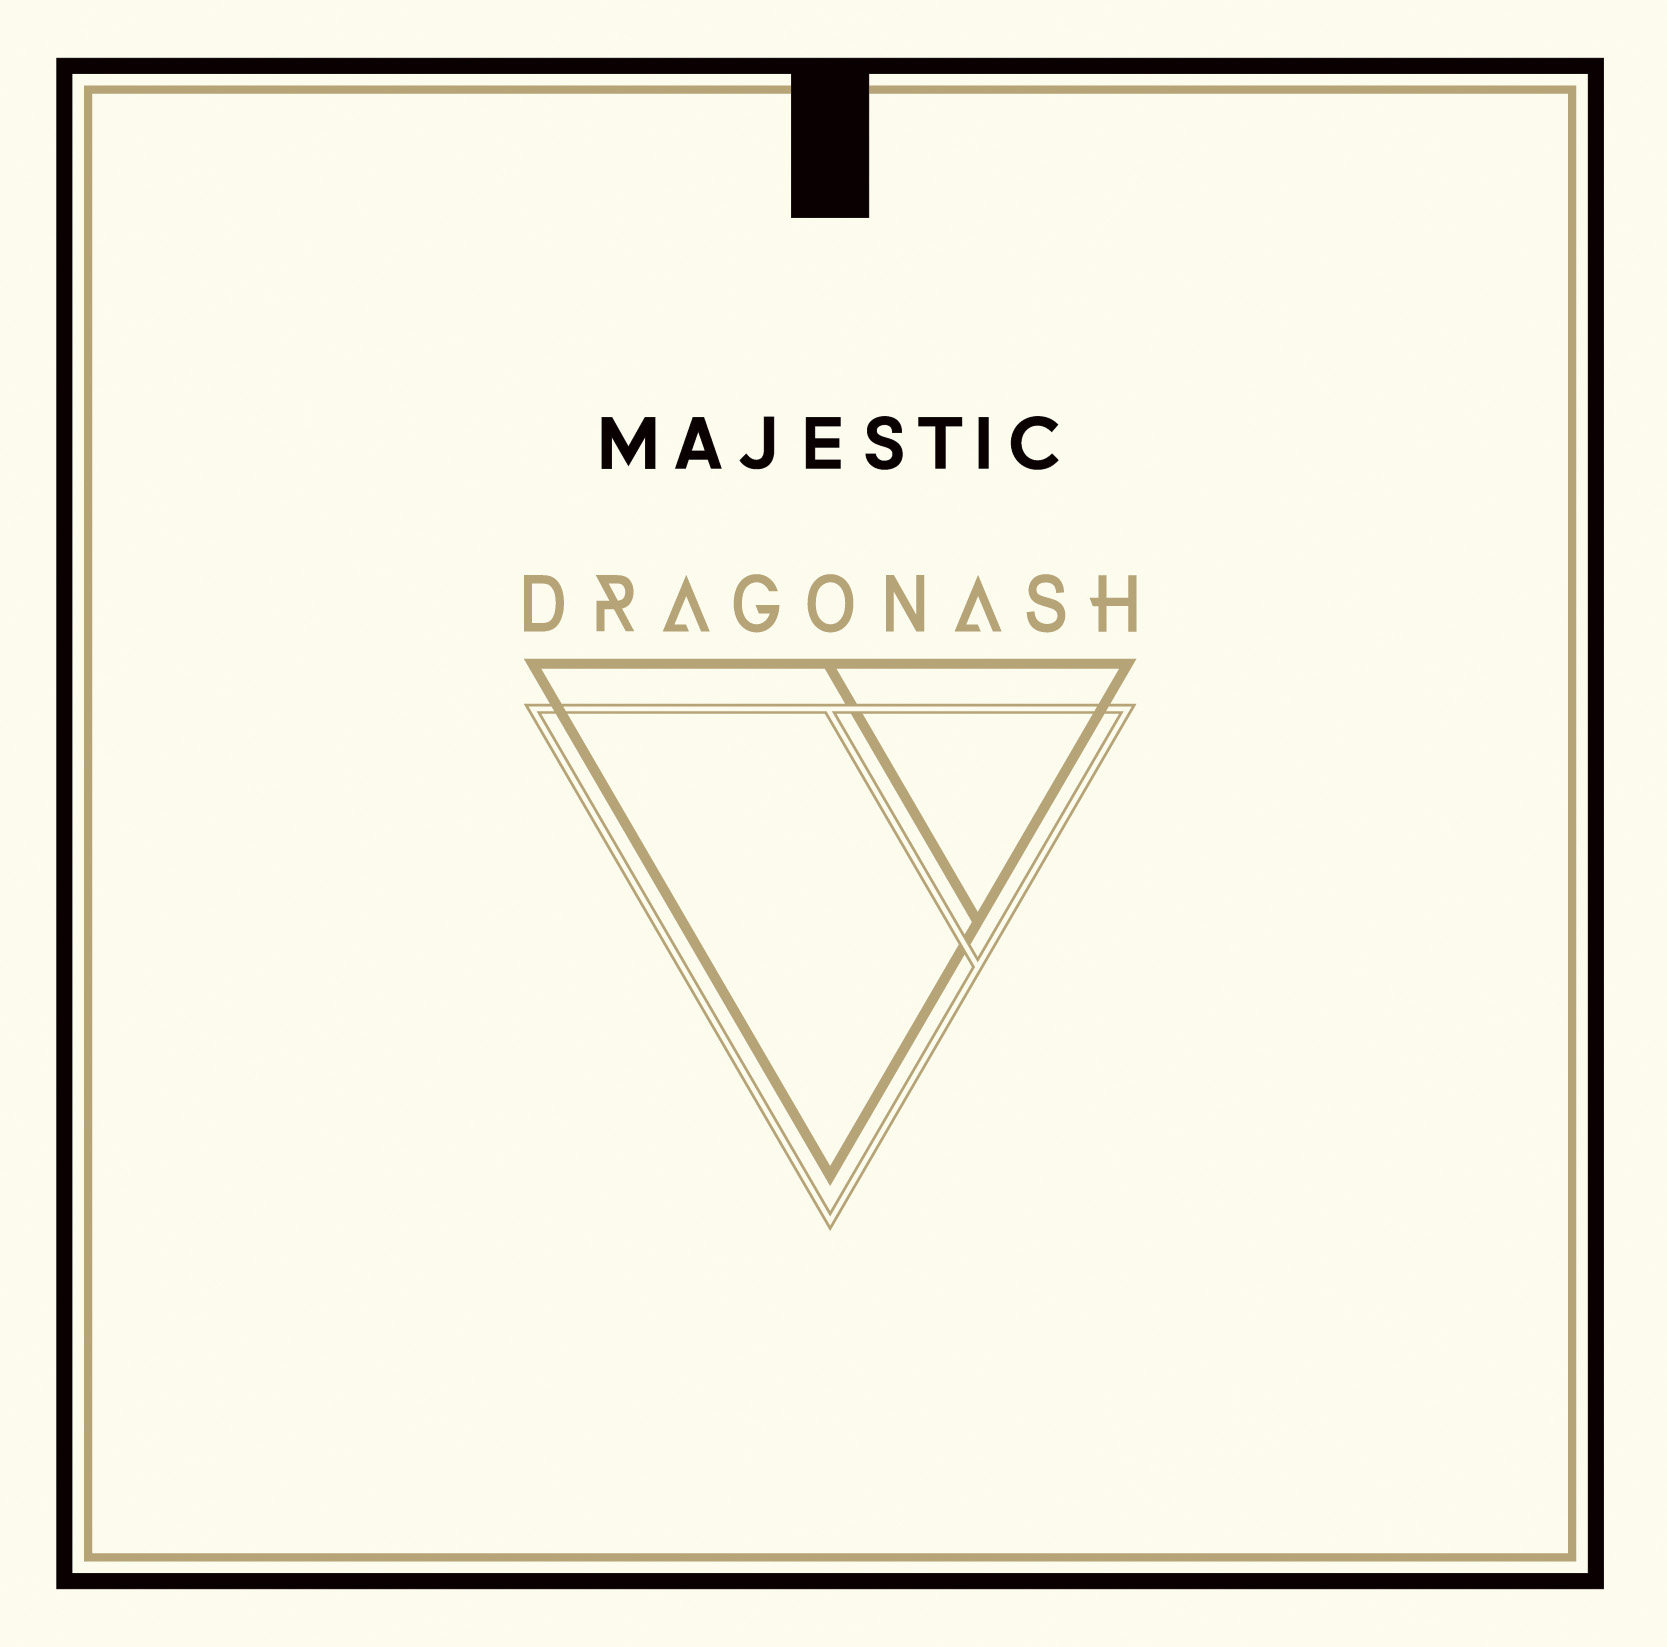 DRAGON ASH-MAJESTIC